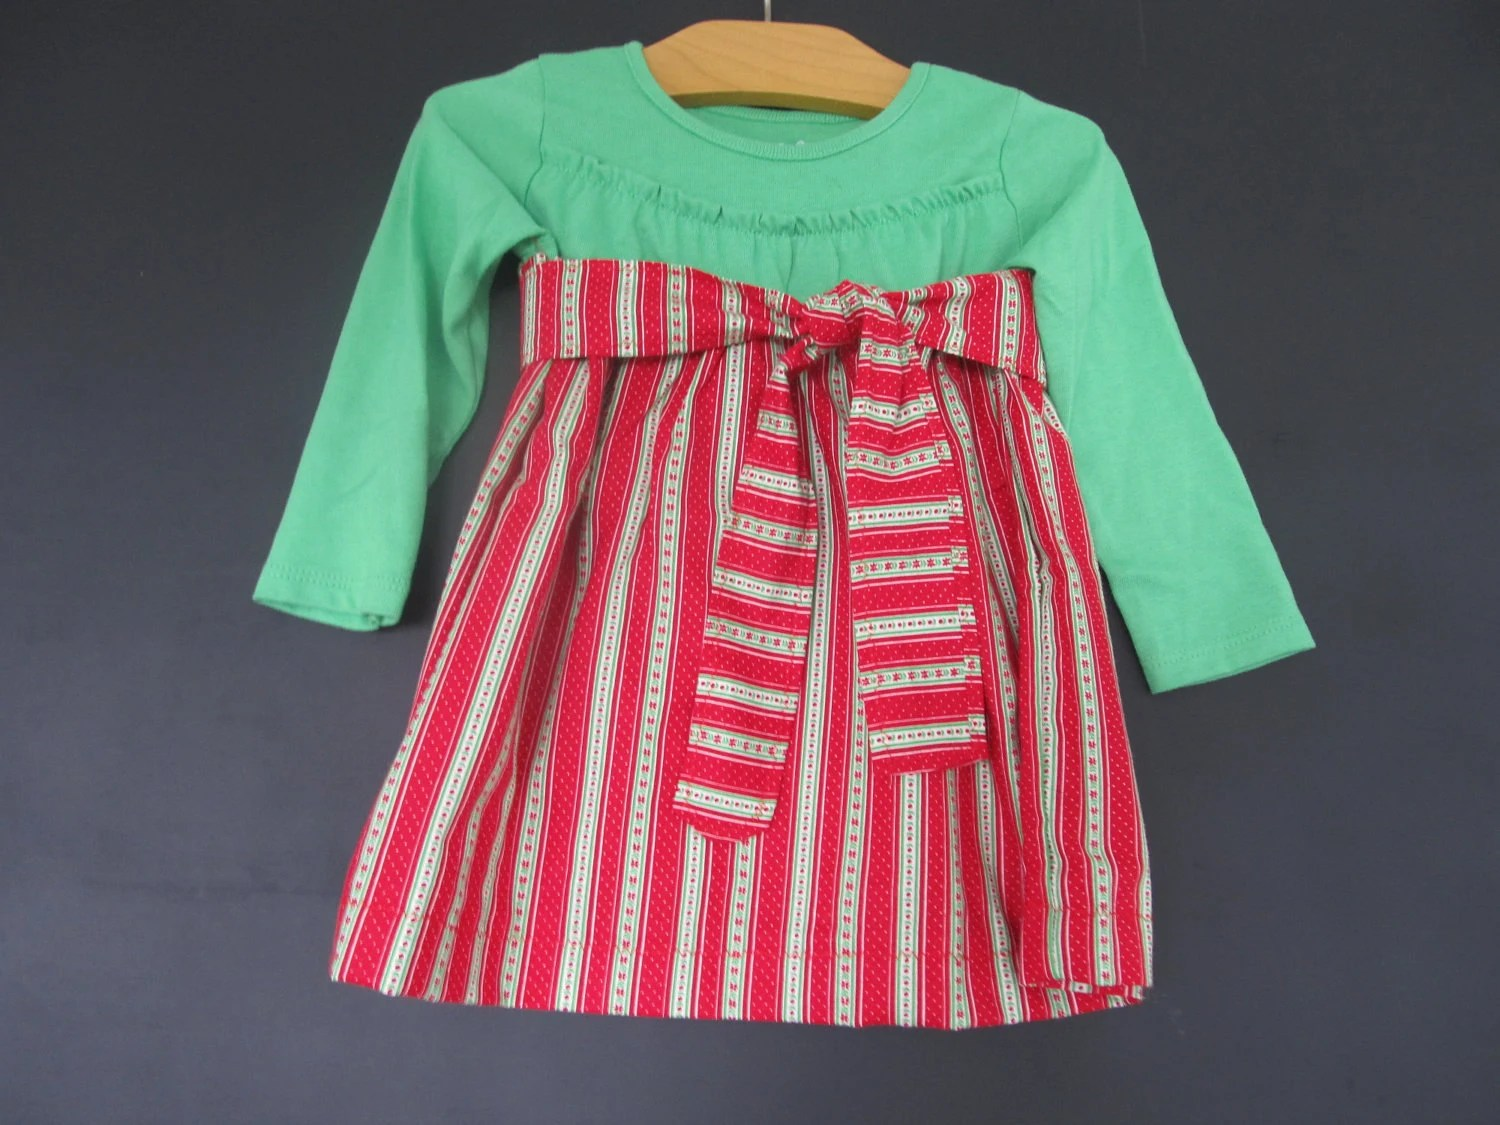 Toddler Girls Christmas t-shirt dress, 18M, with sash, vintage fabric, perfect holiday dress